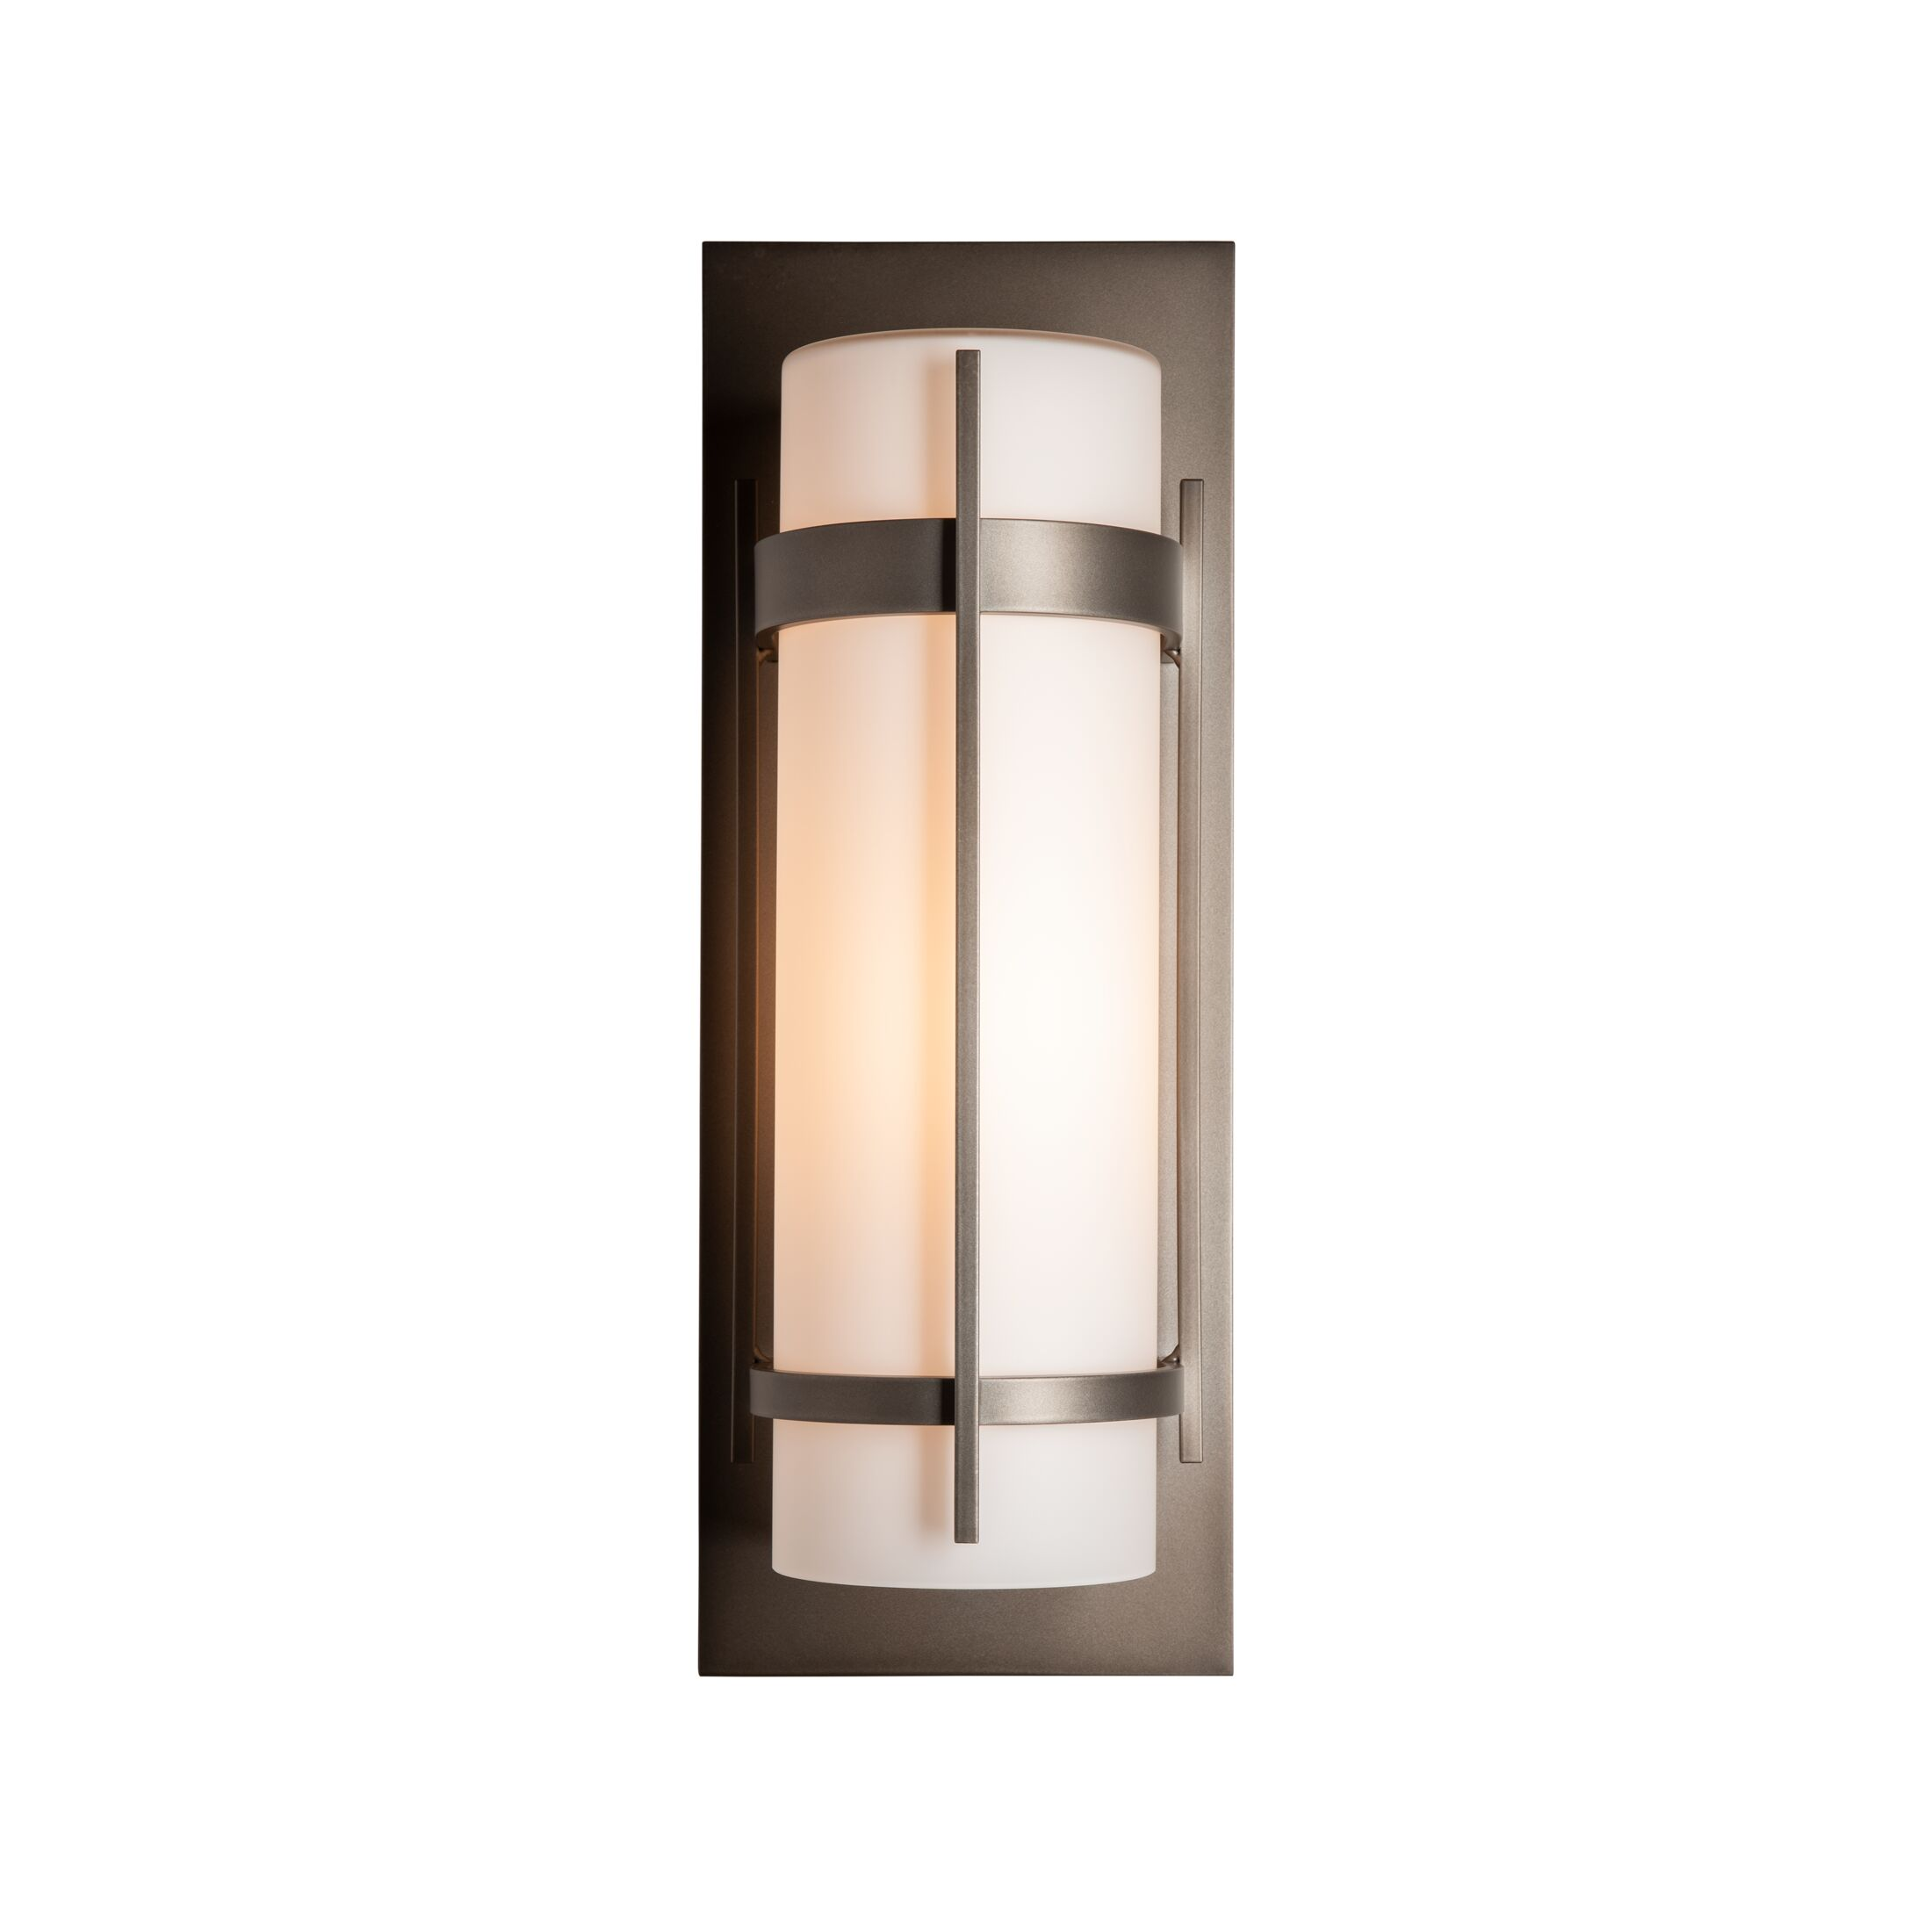 Product Detail: Banded Large Outdoor Sconce